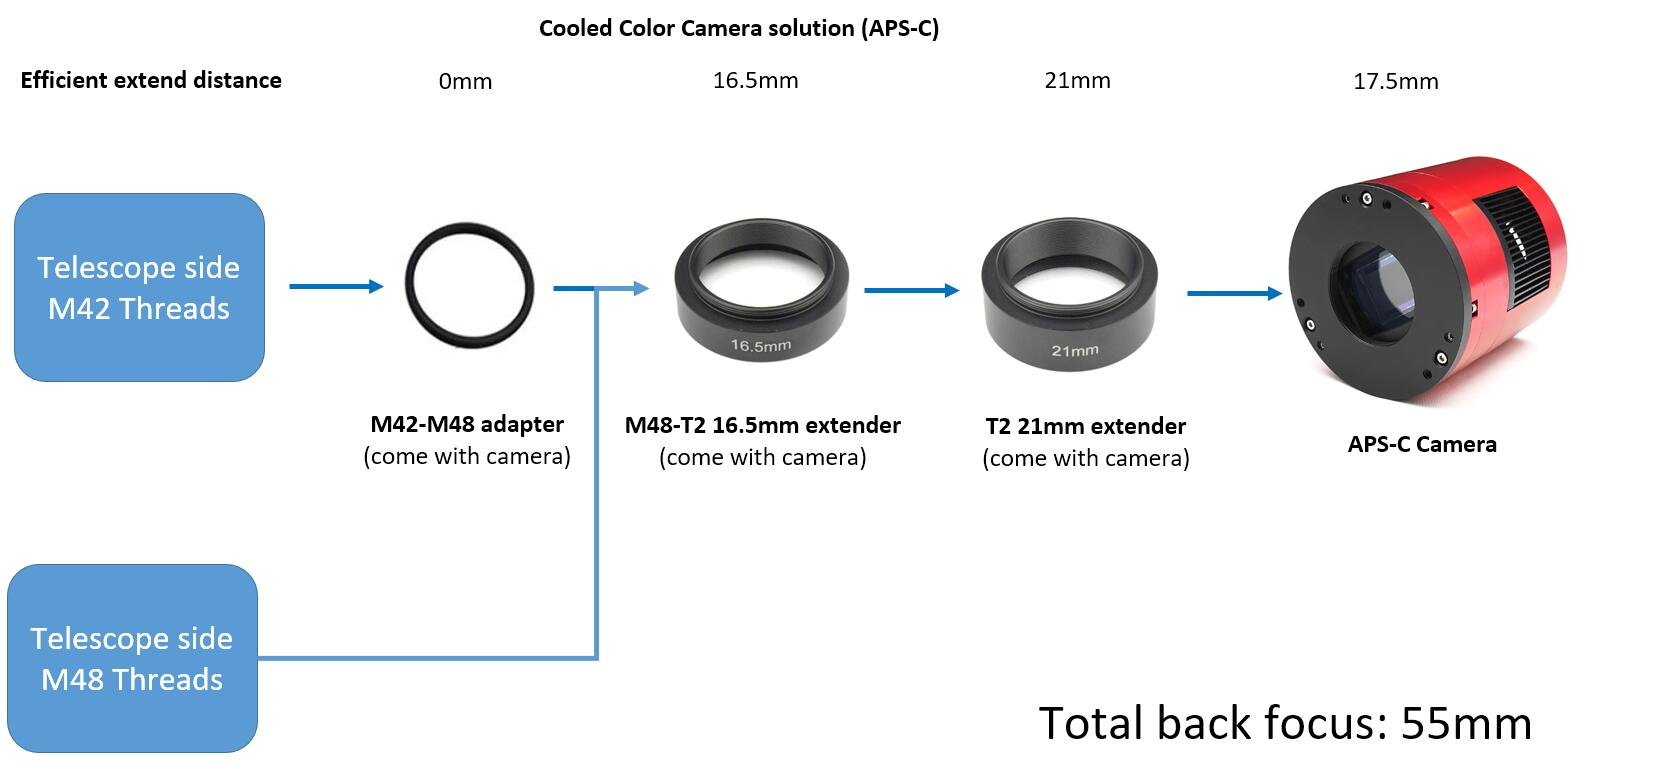 The best solution of 55mm back focus length | ZWO ASI